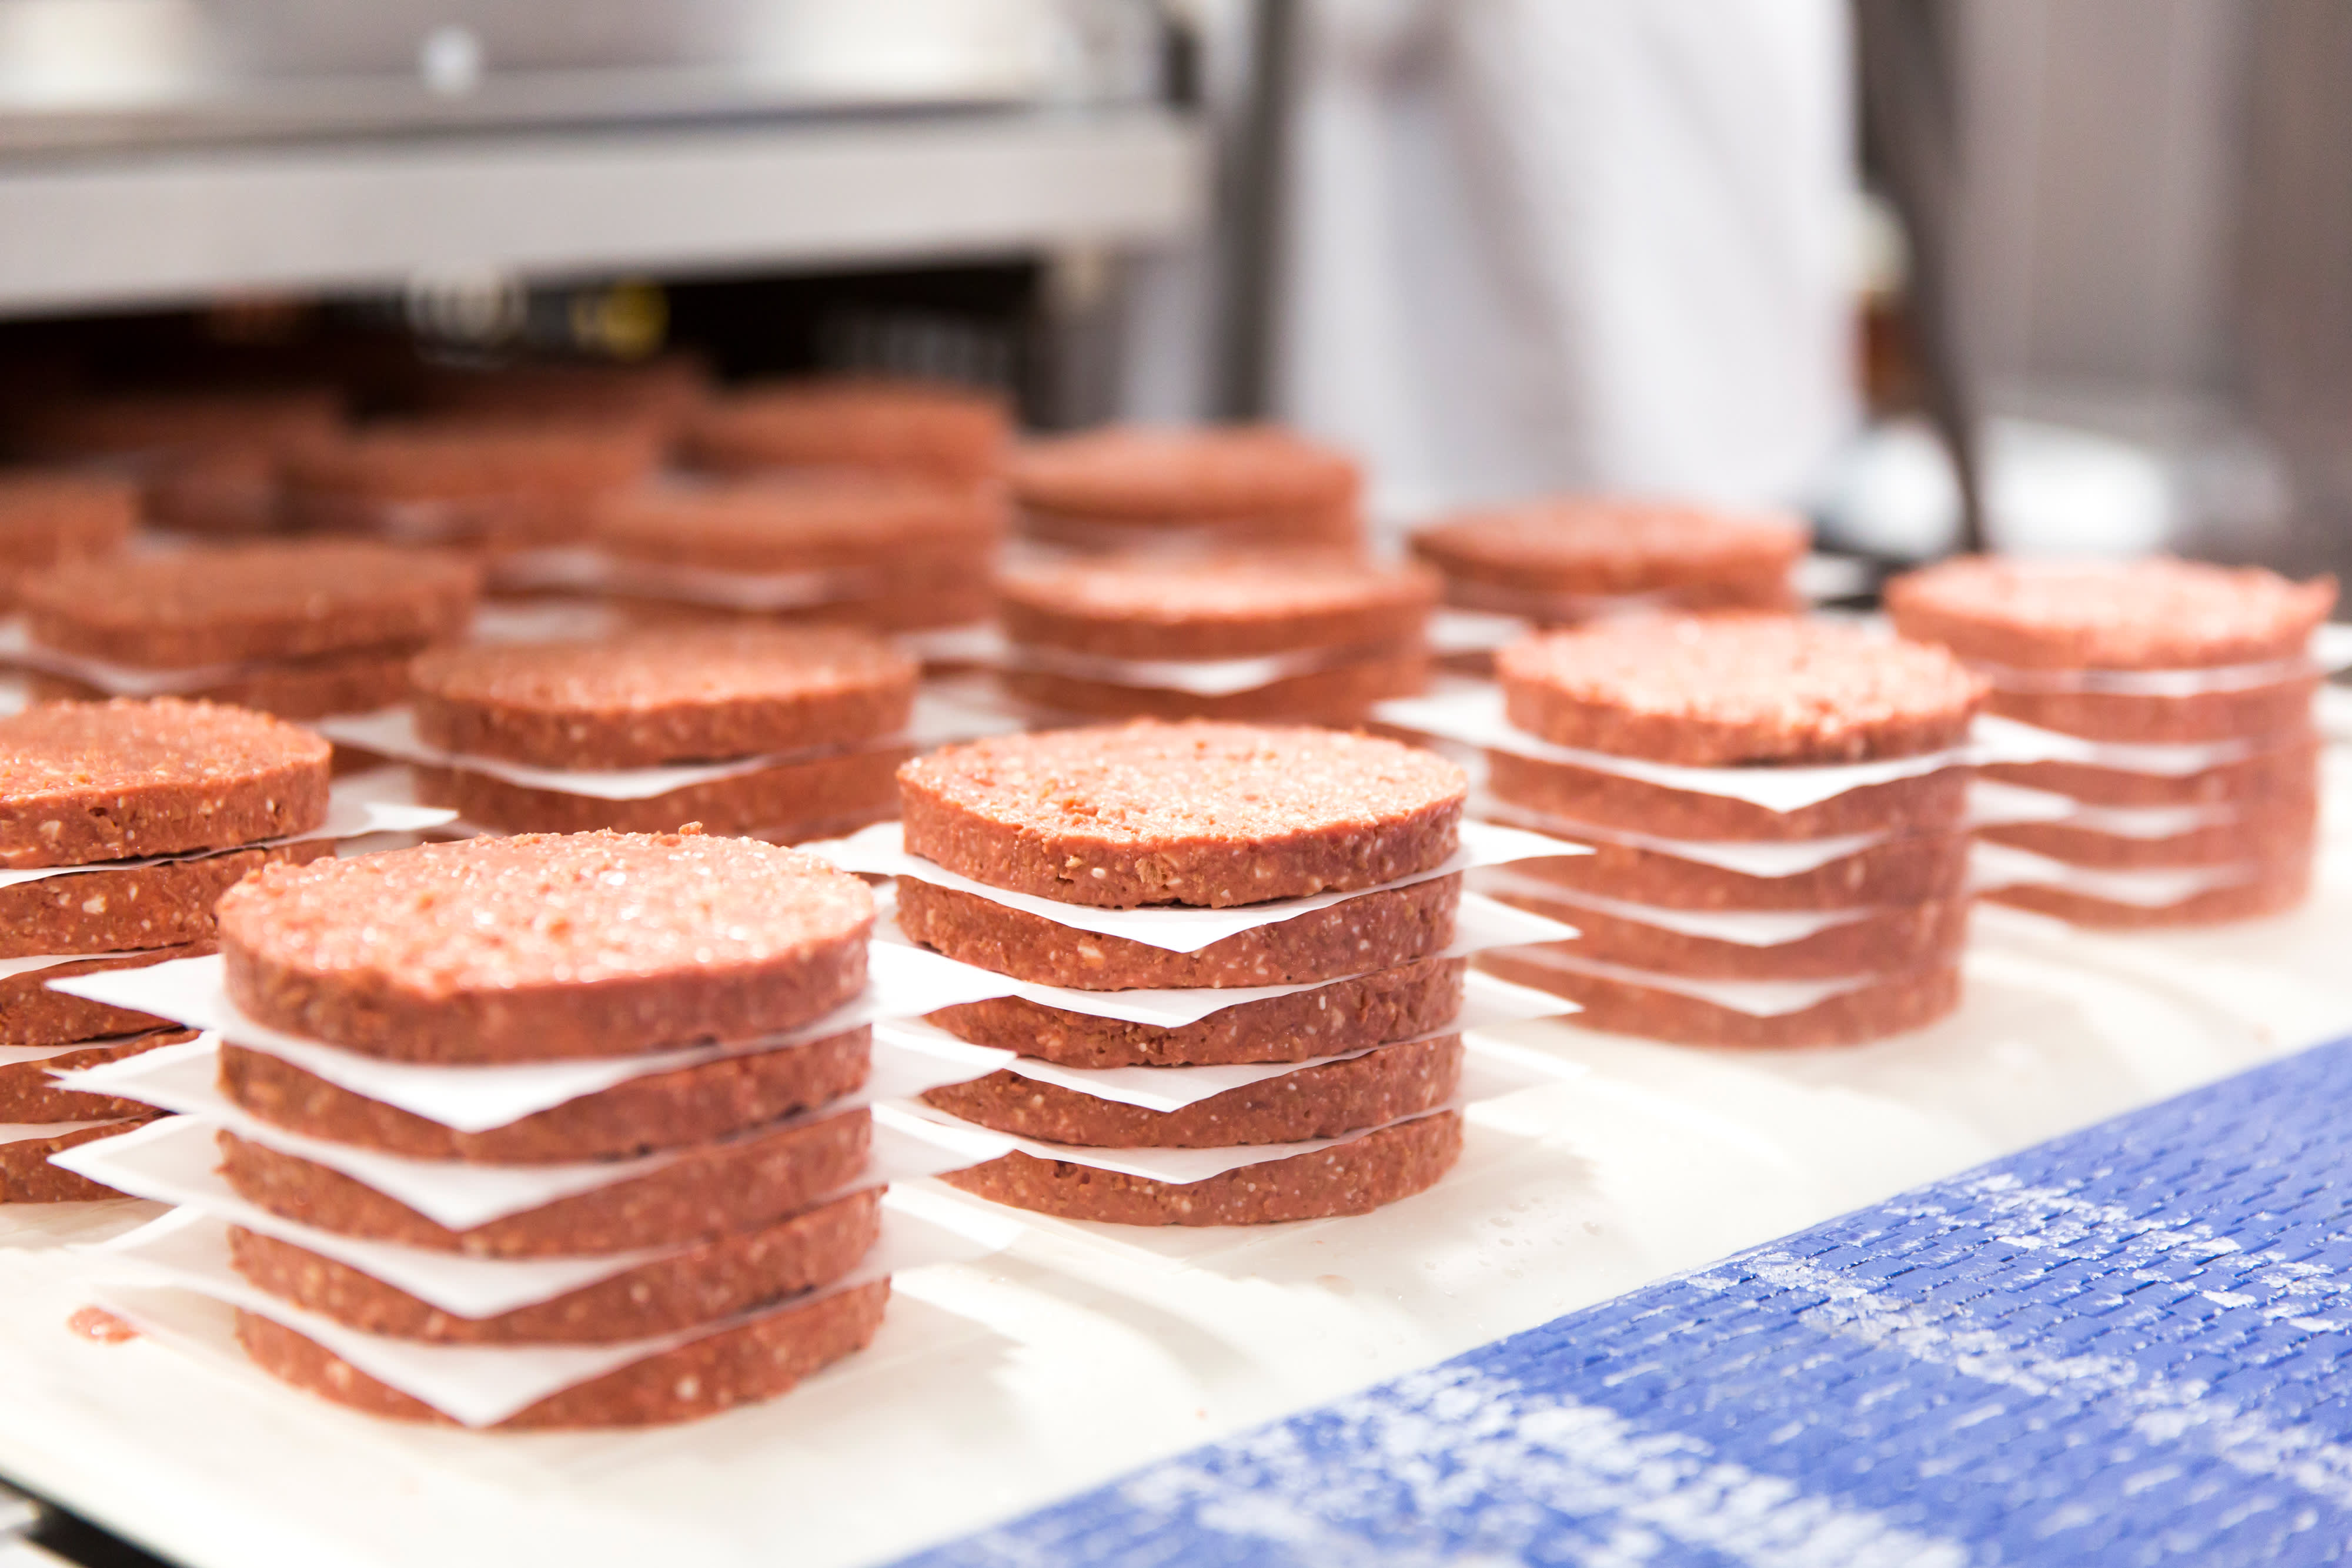 Beyond Meat rival Impossible Foods raises another $300 million